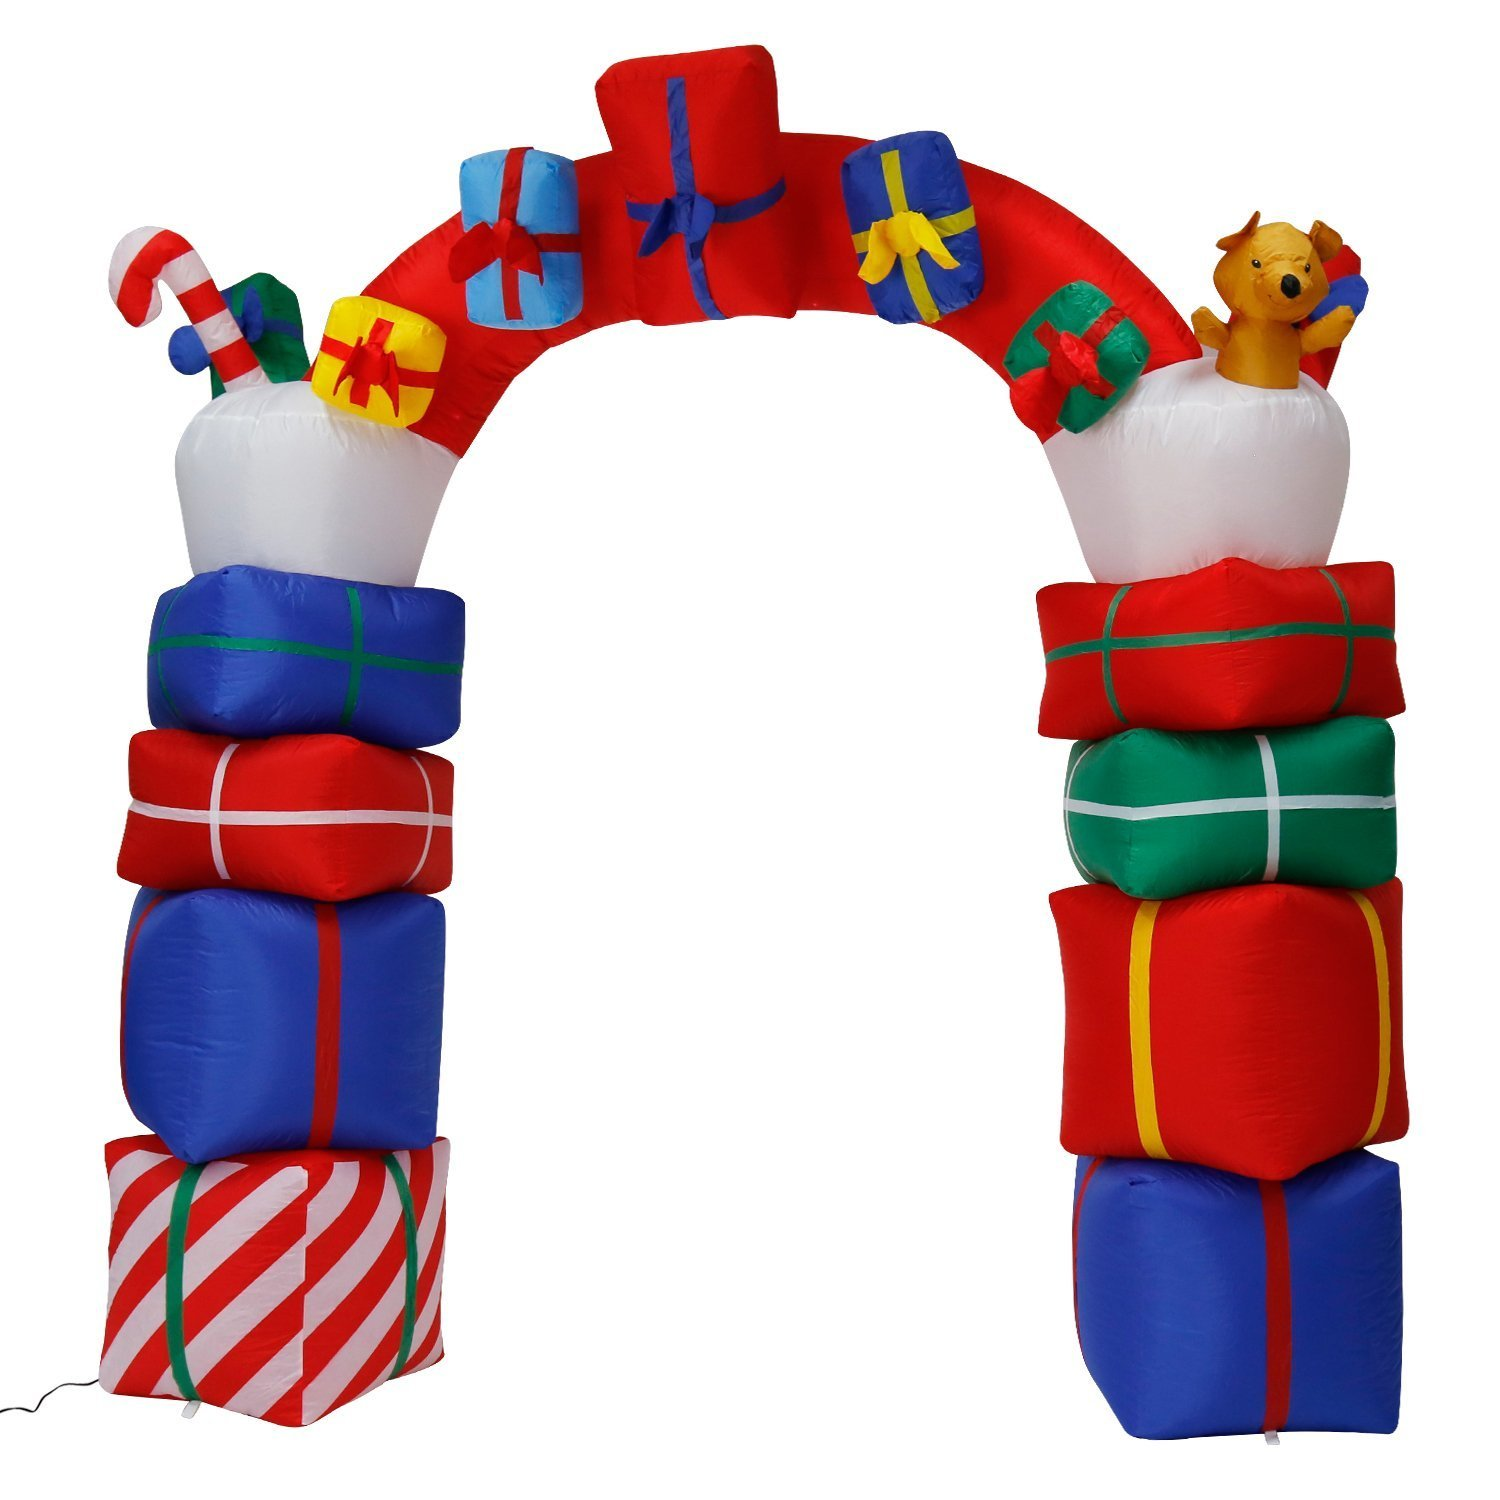 8 Foot Christmas Inflatables Airblown Gift Boxes Archway Xmas Blow Up Decoration for Yard Lawn Garden Home Holiday Outdoor Decor